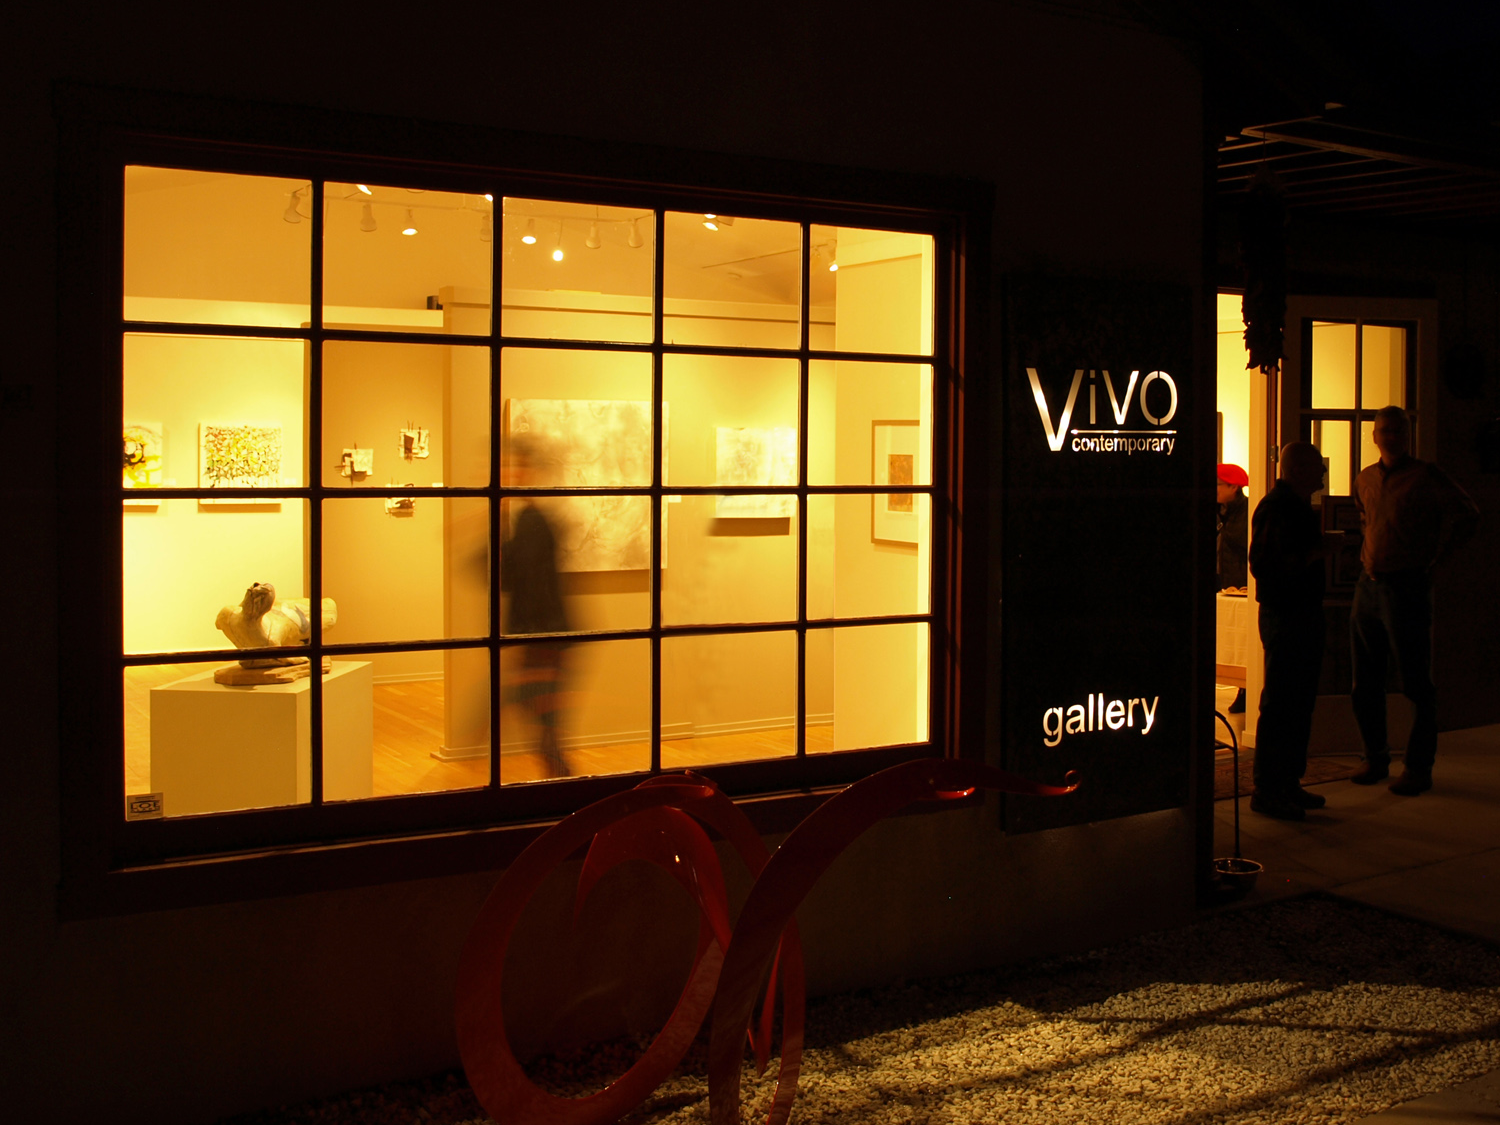 ViVO during a Friday evening reception.